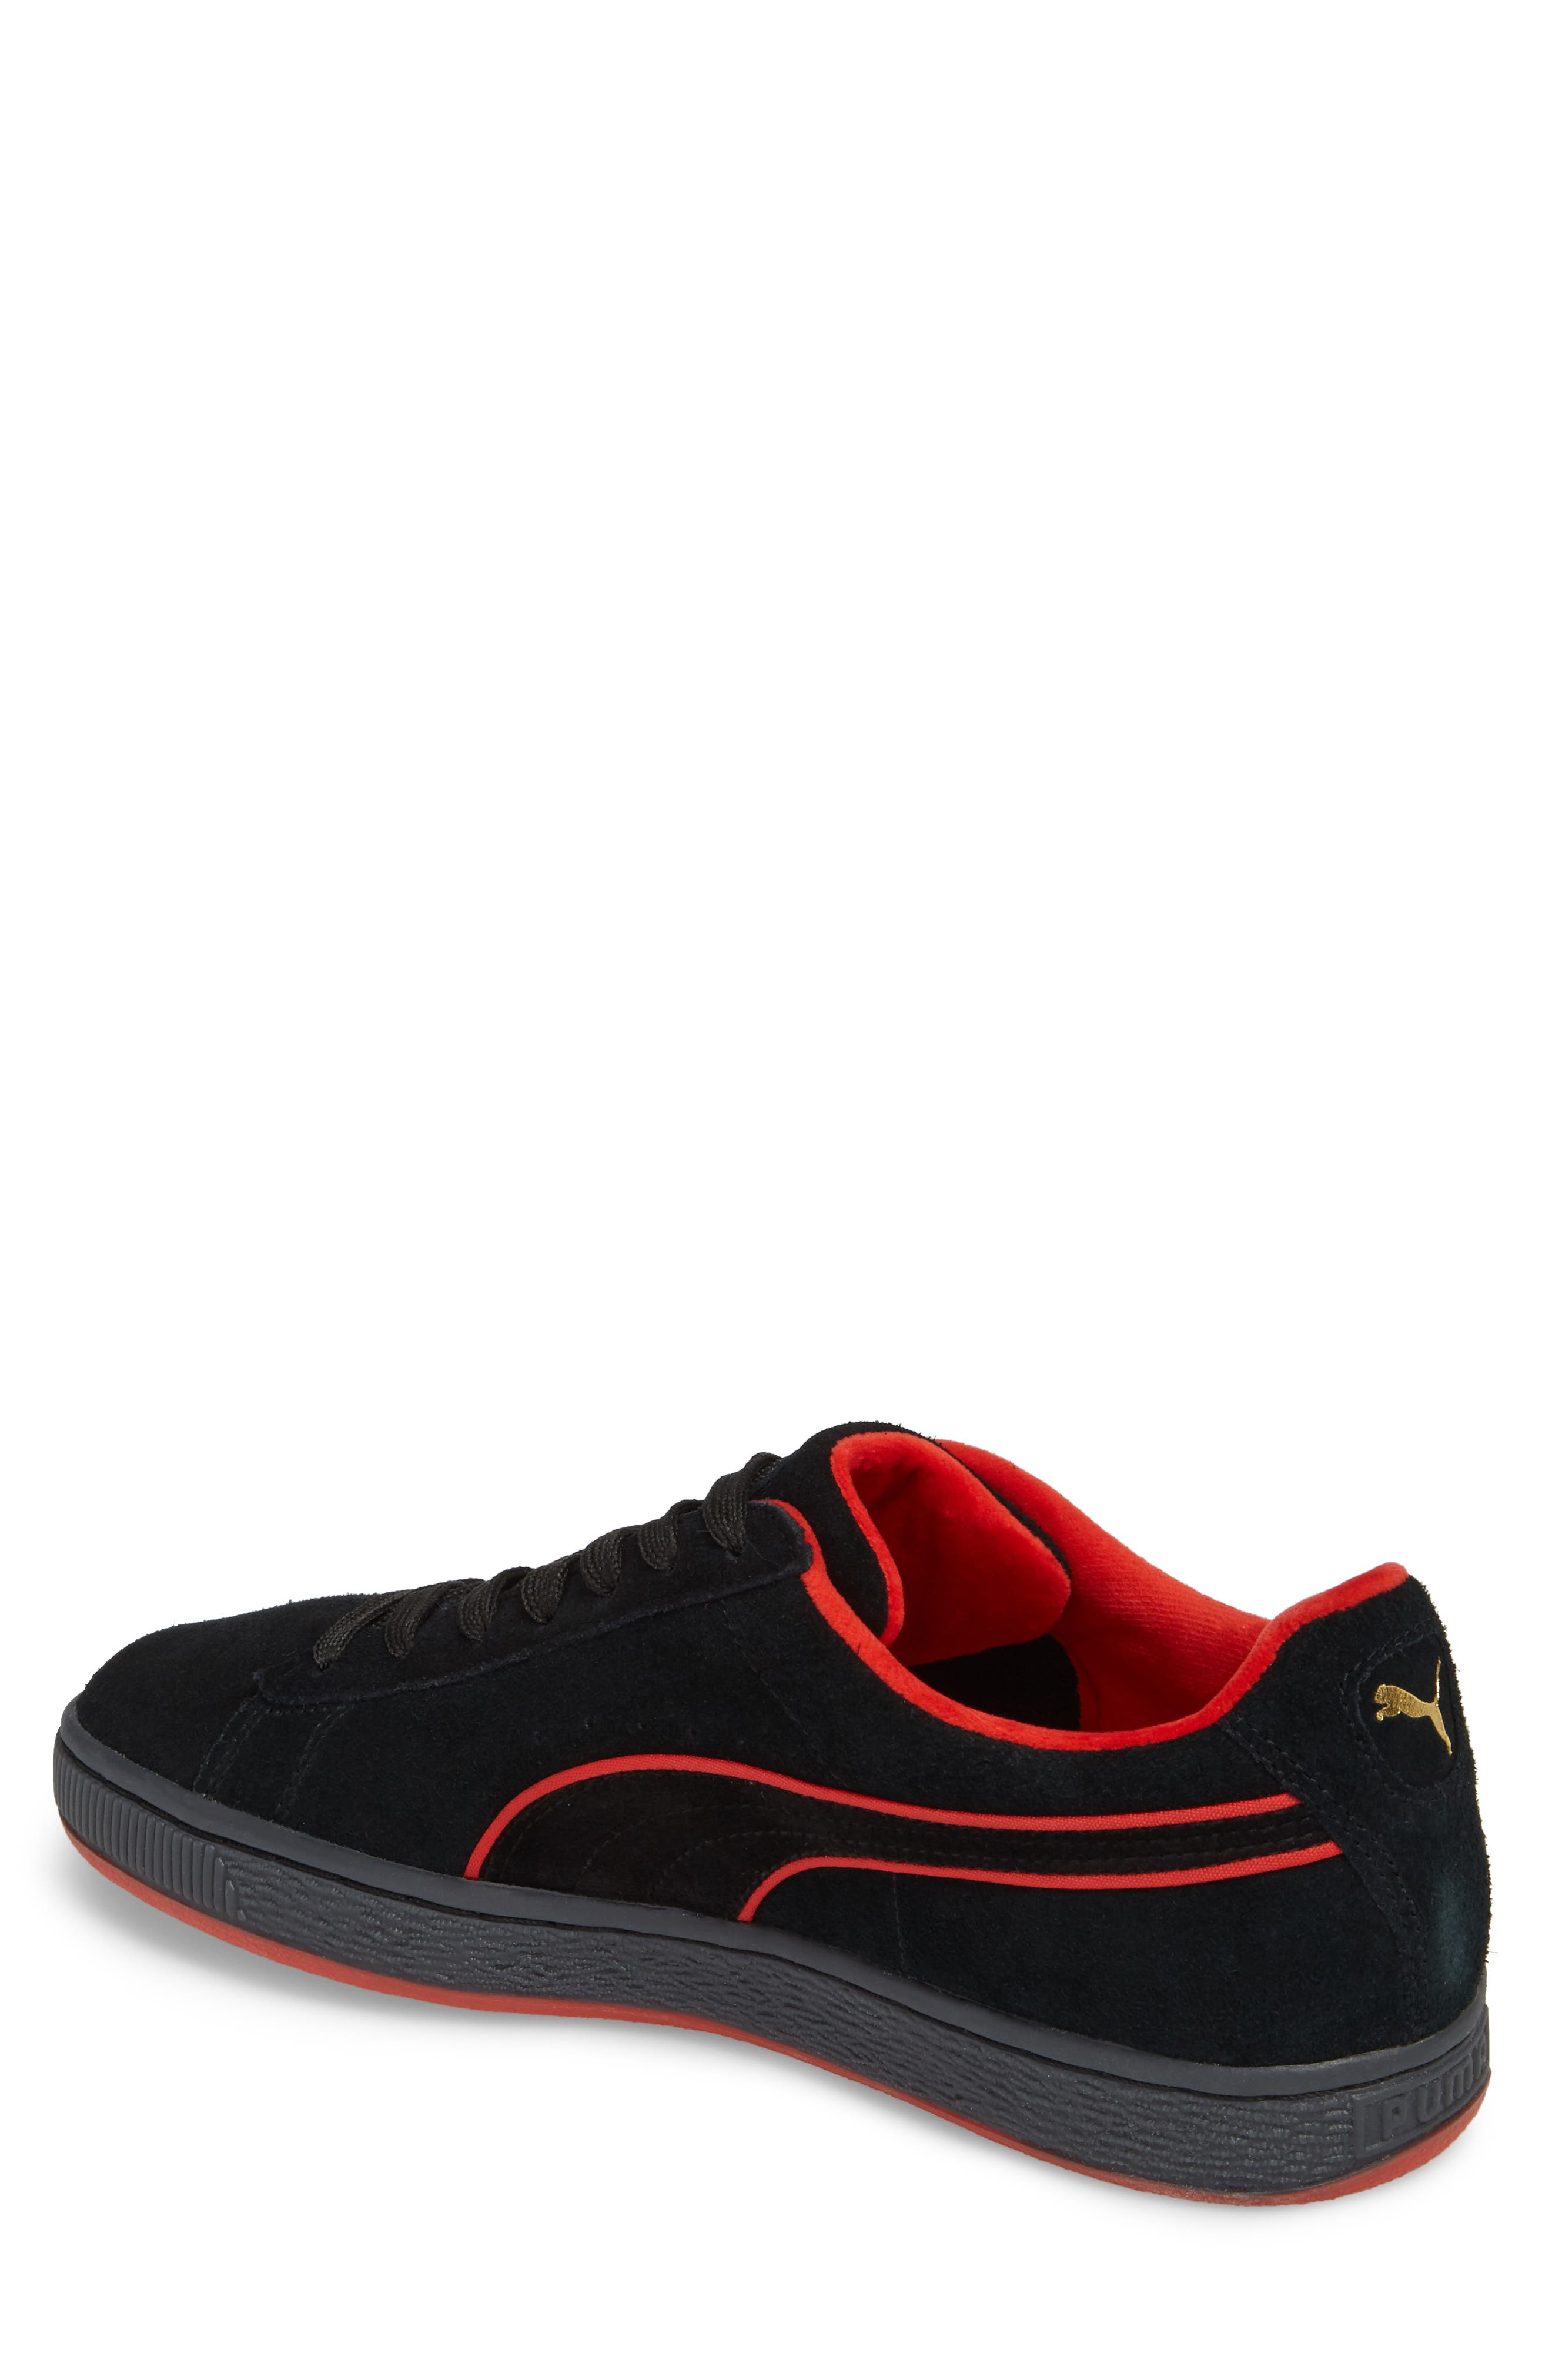 x FUBU Suede Classic Sneaker,                             Alternate thumbnail 2, color,